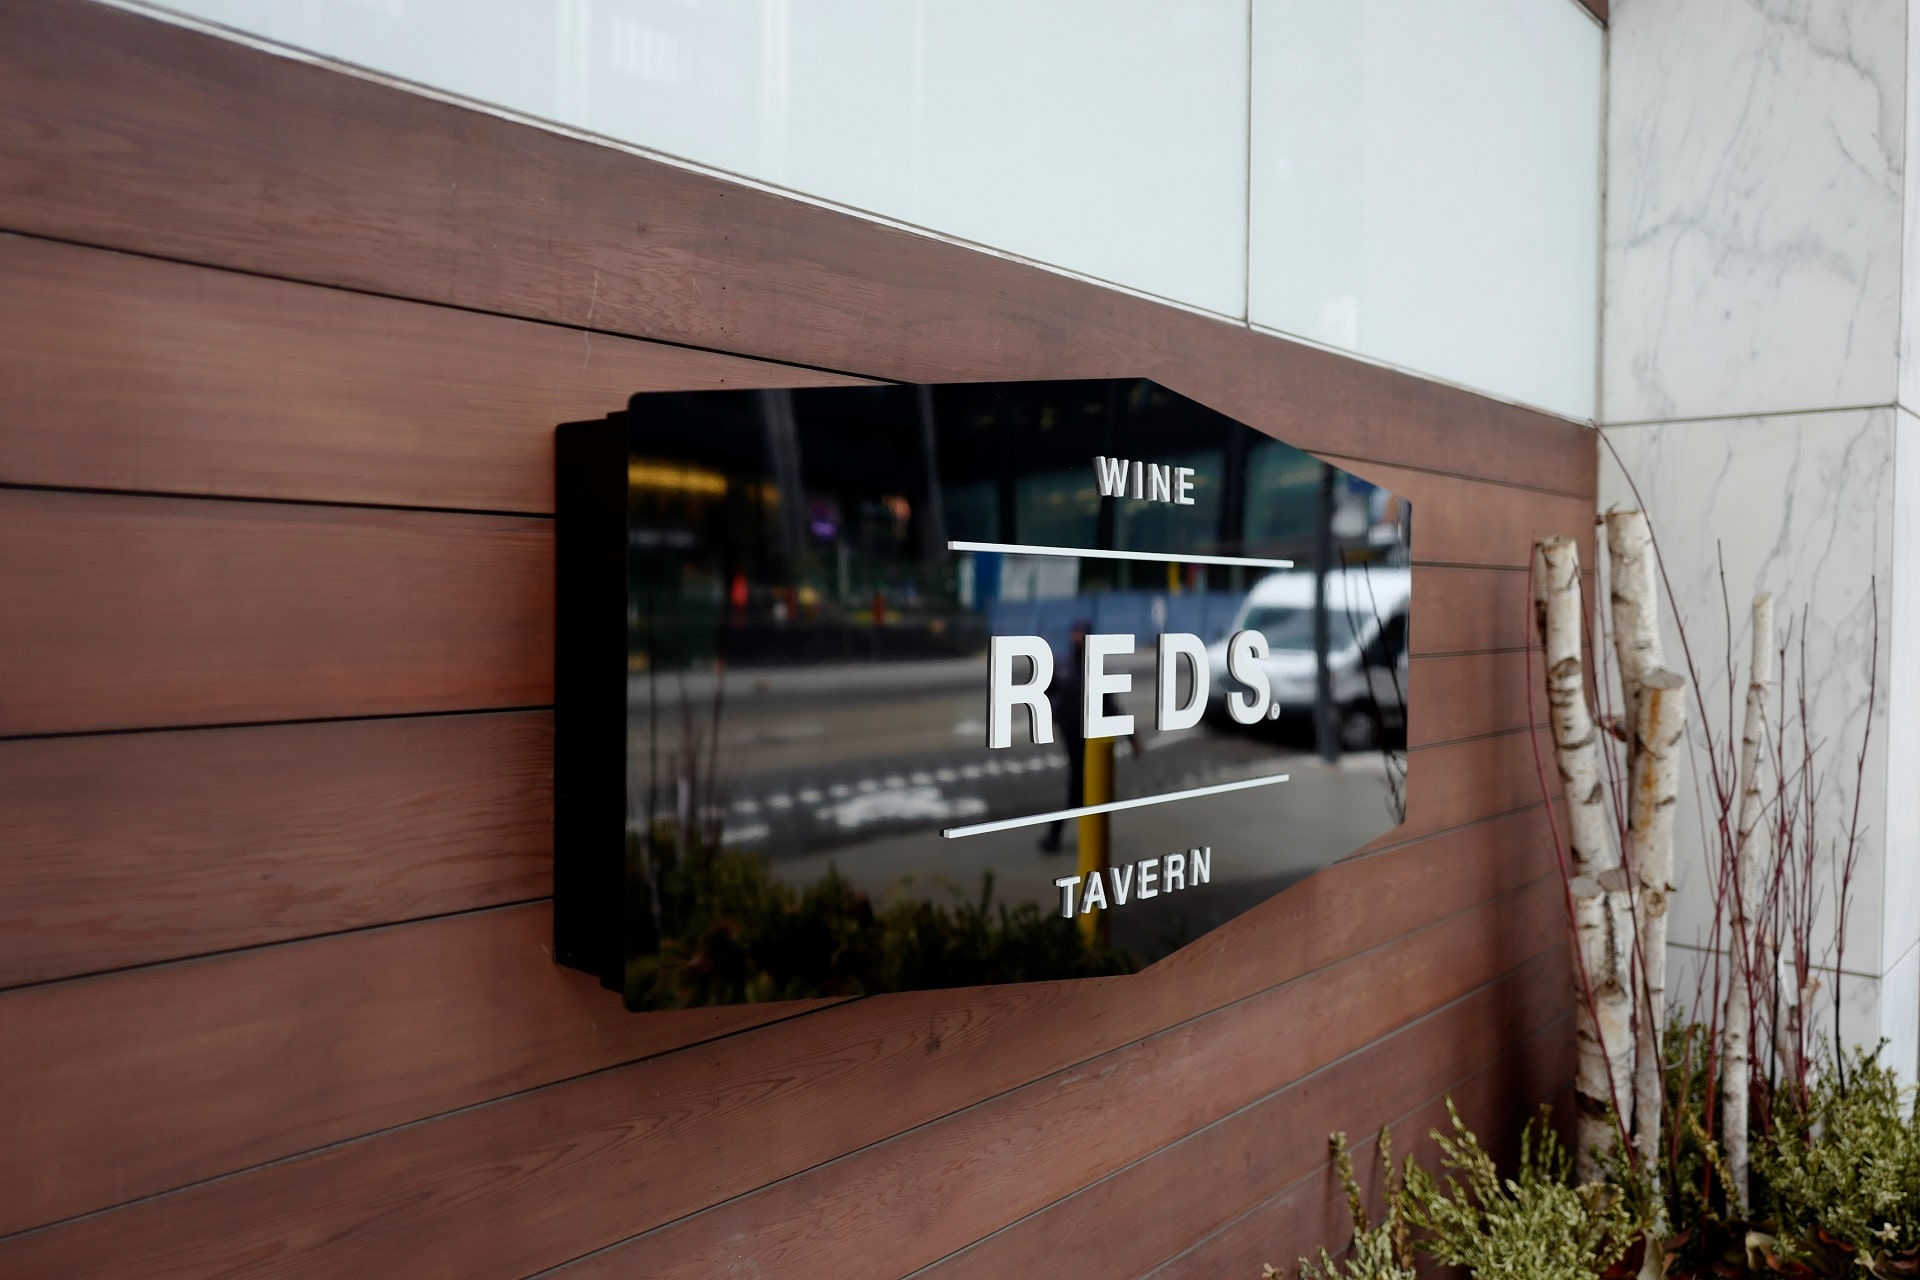 Reds tavern sign by Signarama Toronto